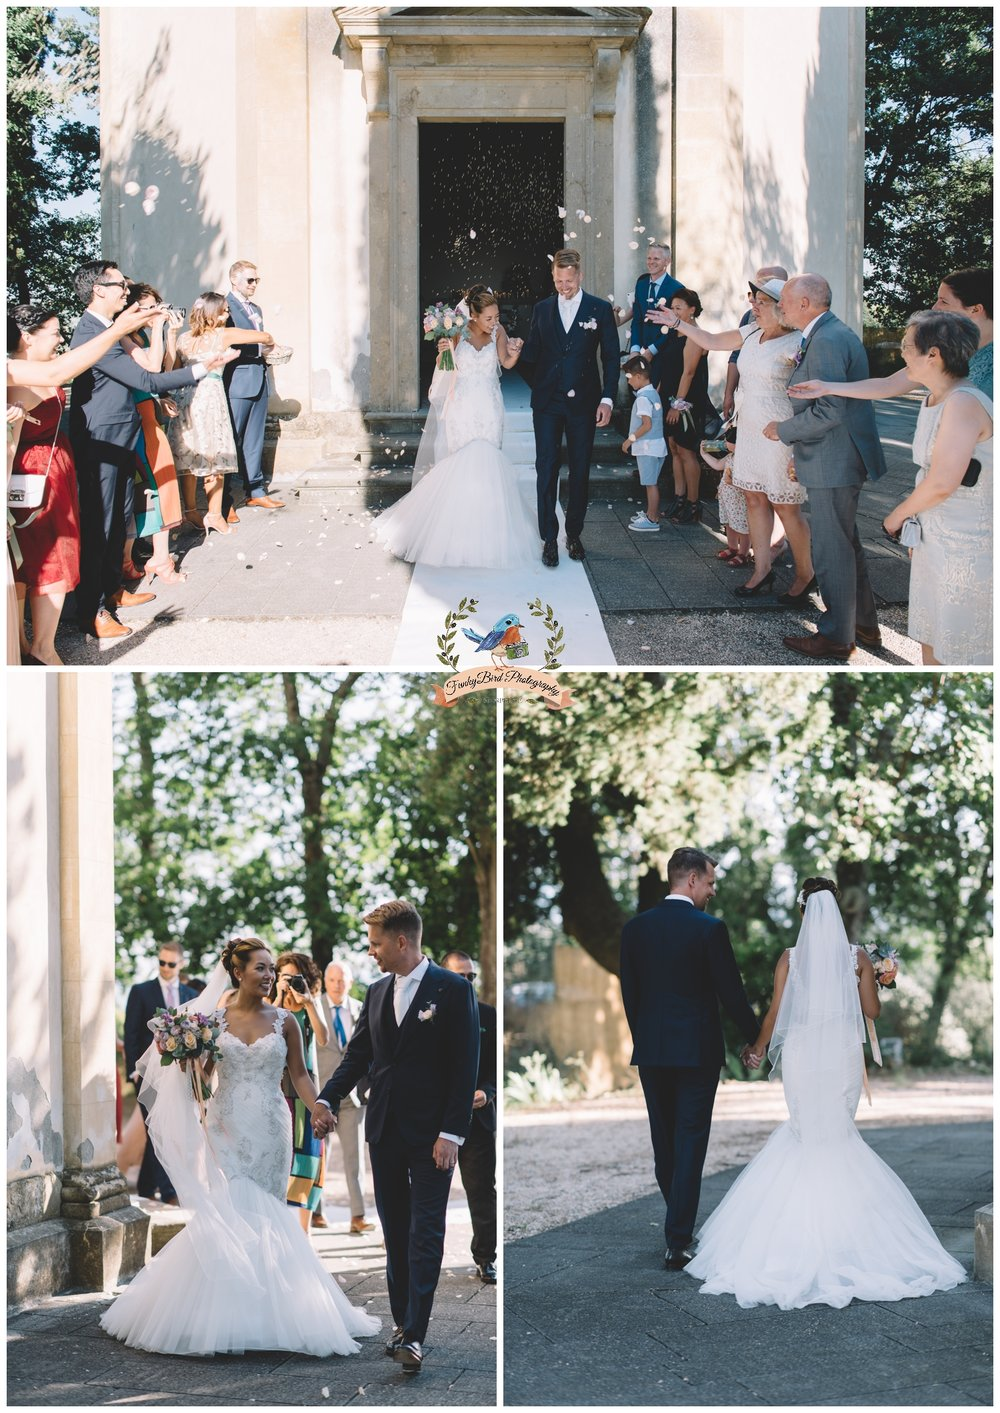 Wedding_Photographer_In_Tuscany_Italy_0019.jpg